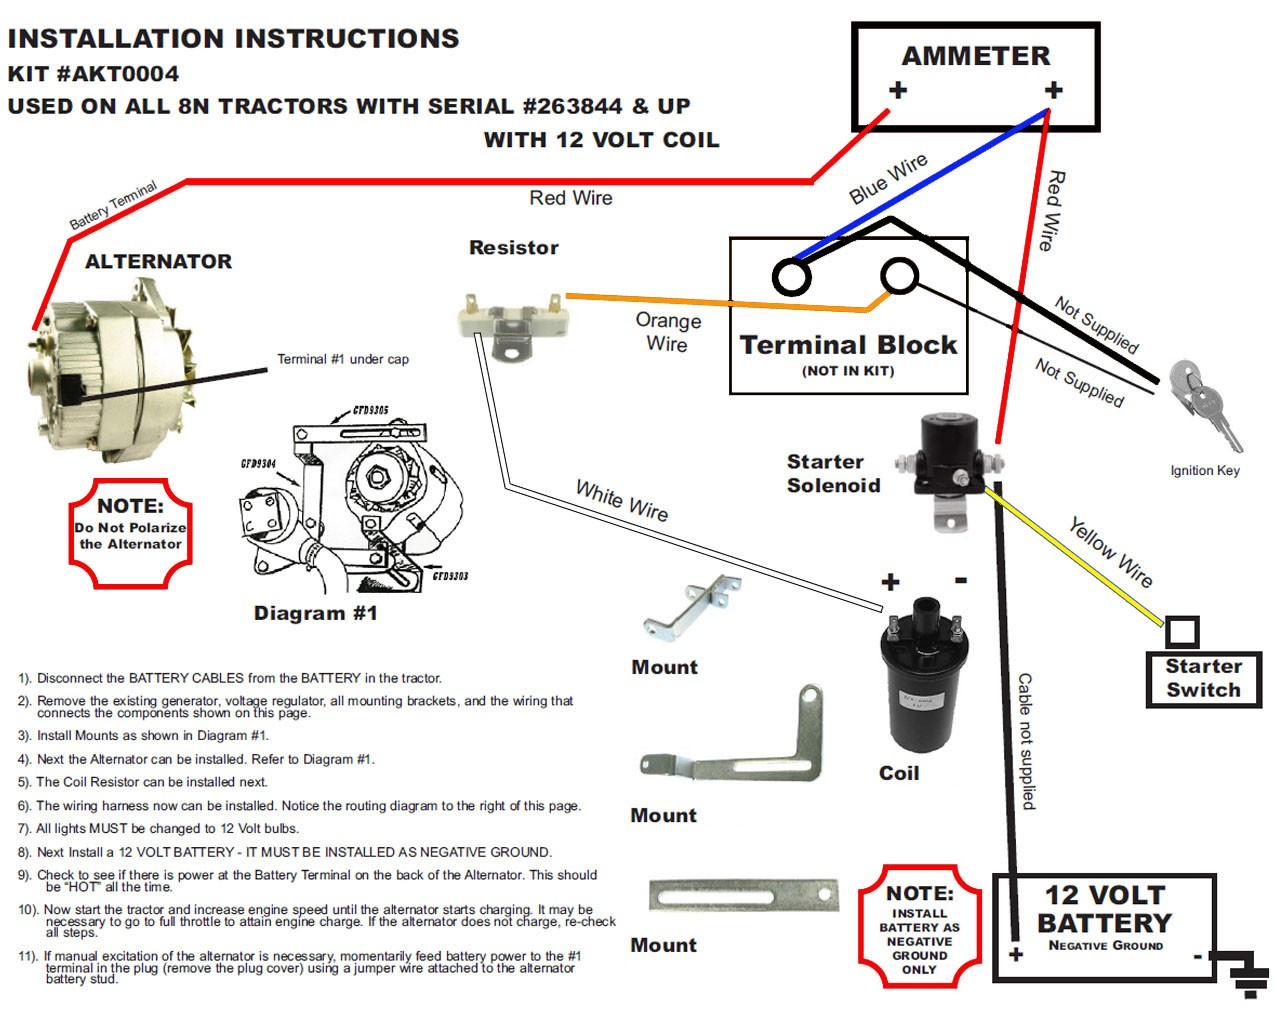 12 volt conversion wiring diagram new 8n ford alternator fits generator conversion kit side ... ford 9n 12 volt conversion wiring diagram